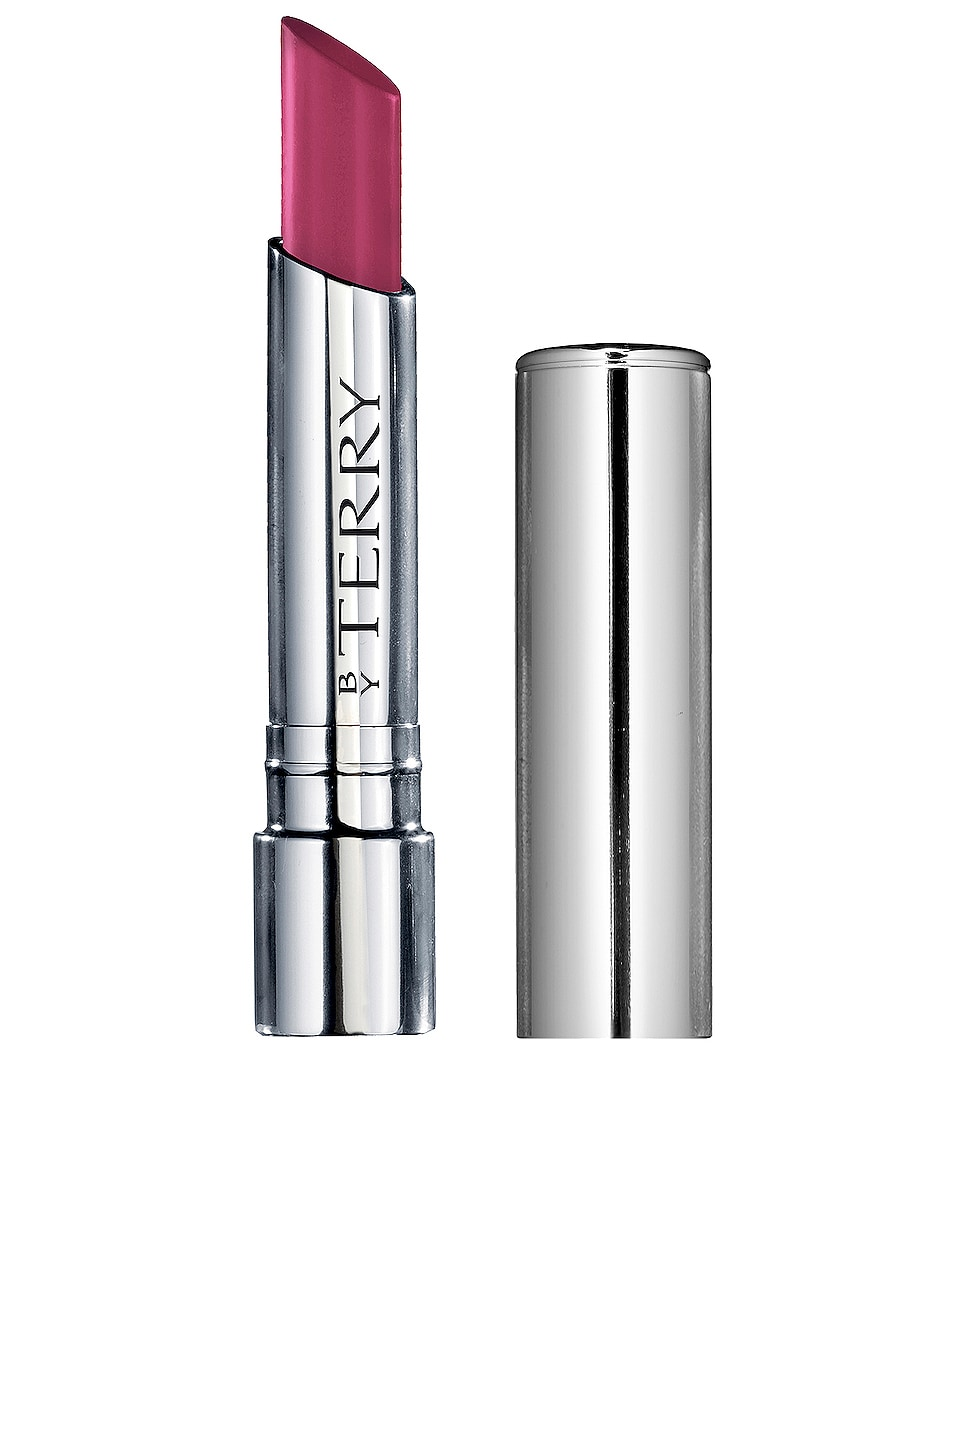 By Terry Hyaluronic Sheer Rouge Hydra-Balm Lipstick in Grand Cru